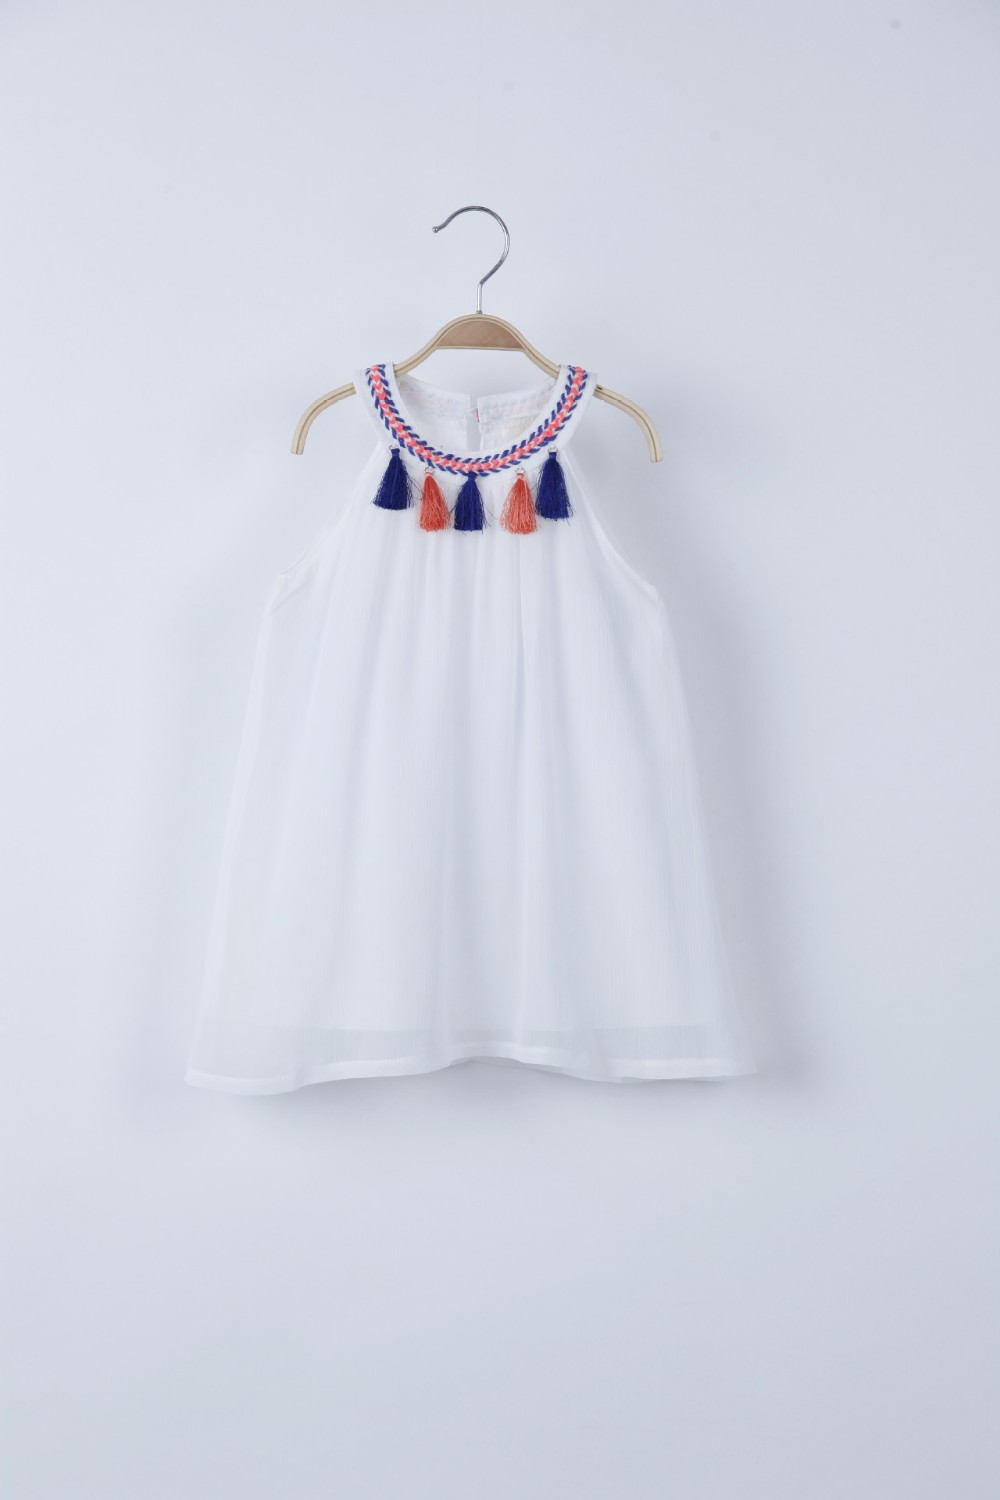 Girls Dress Kids Clothing 2017 Summer new Flower Tassels Dress Fashion Sleeveless Cotton Princess Dress girls white l